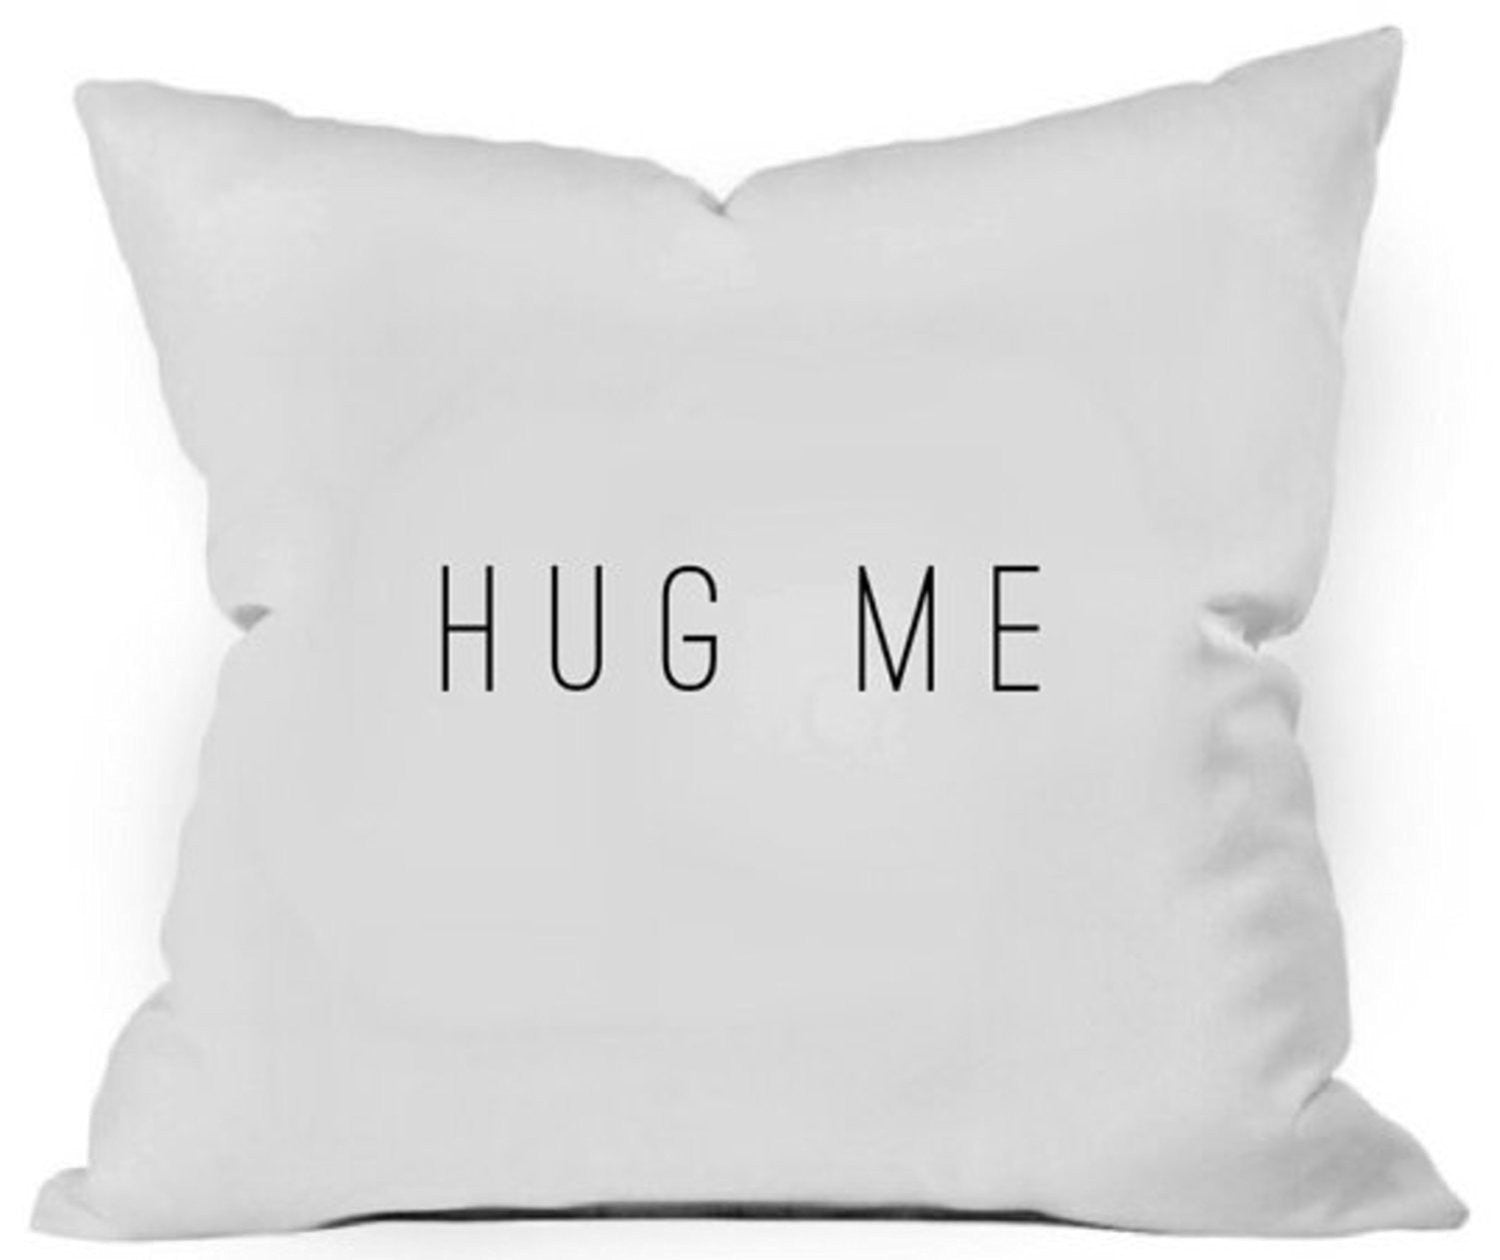 Hug Me Throw Pillow Cover - Bereavement Gift Pillowcase (1 18x18 inch, White)